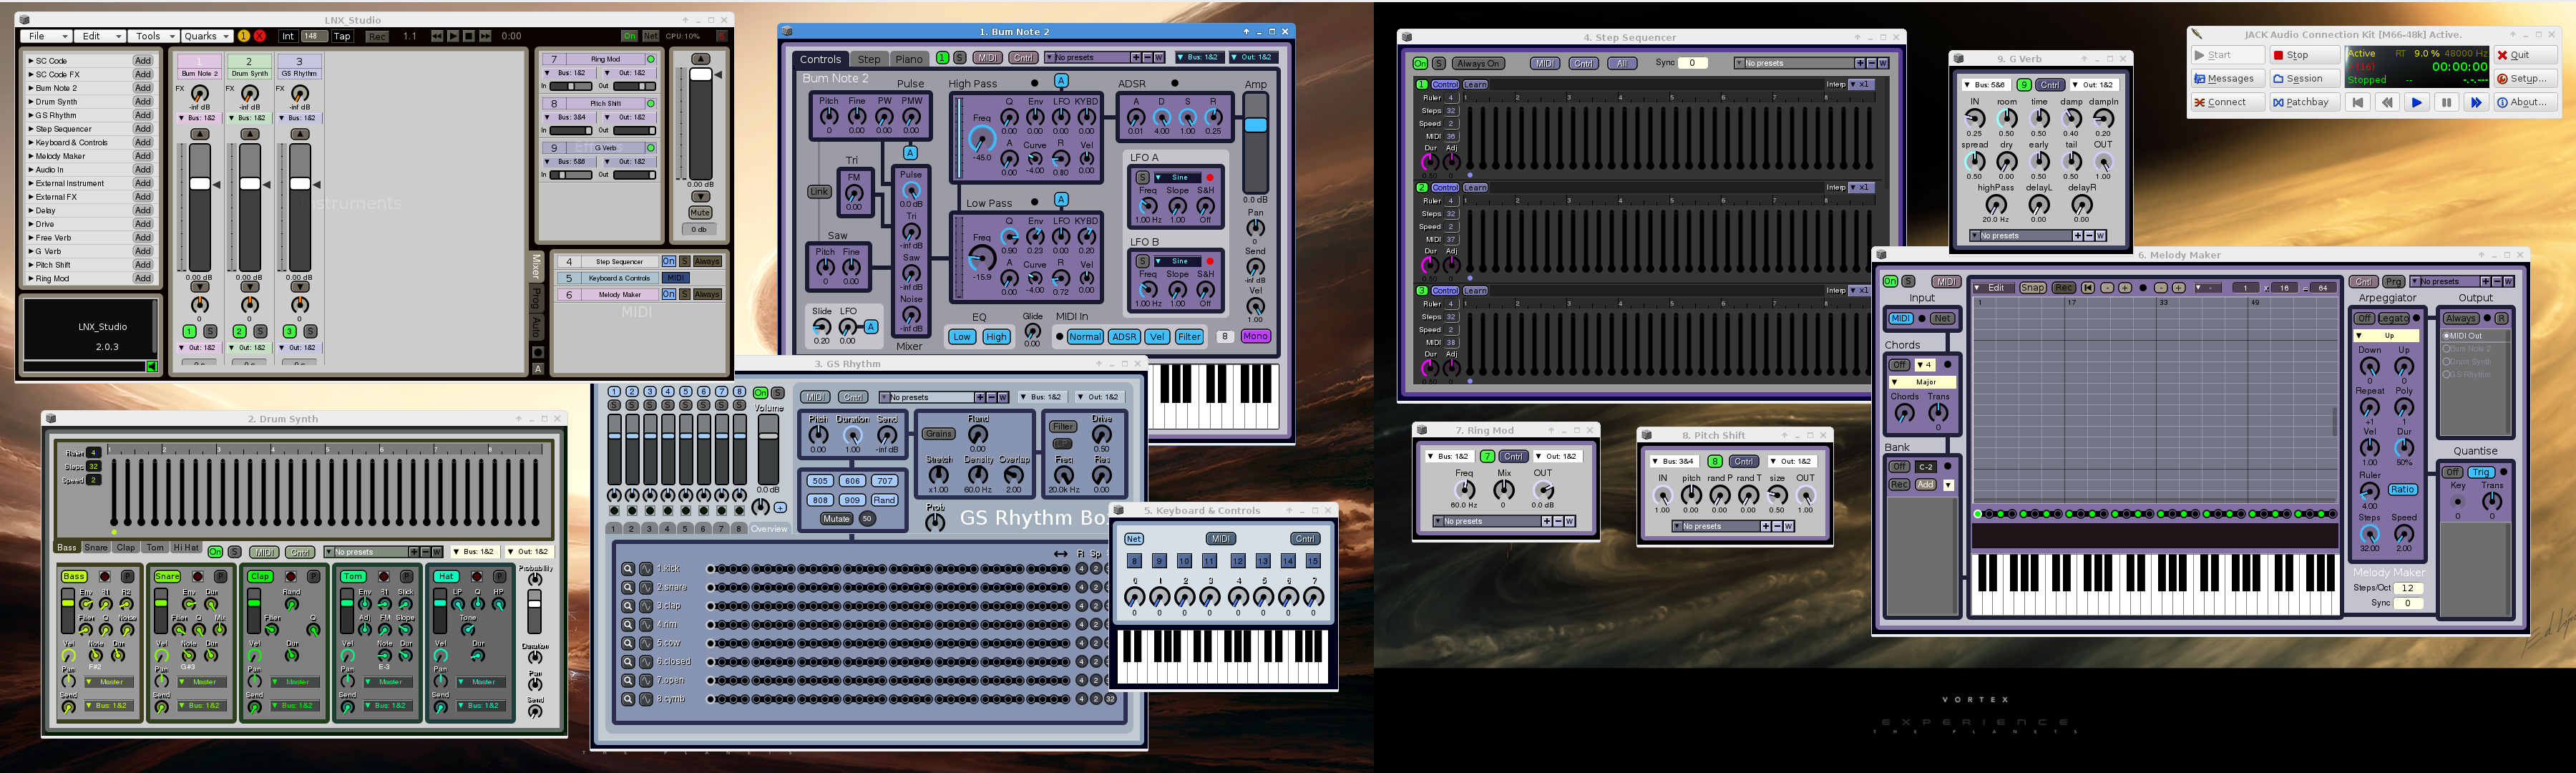 SuperCollider users, check this out - LinuxMusicians